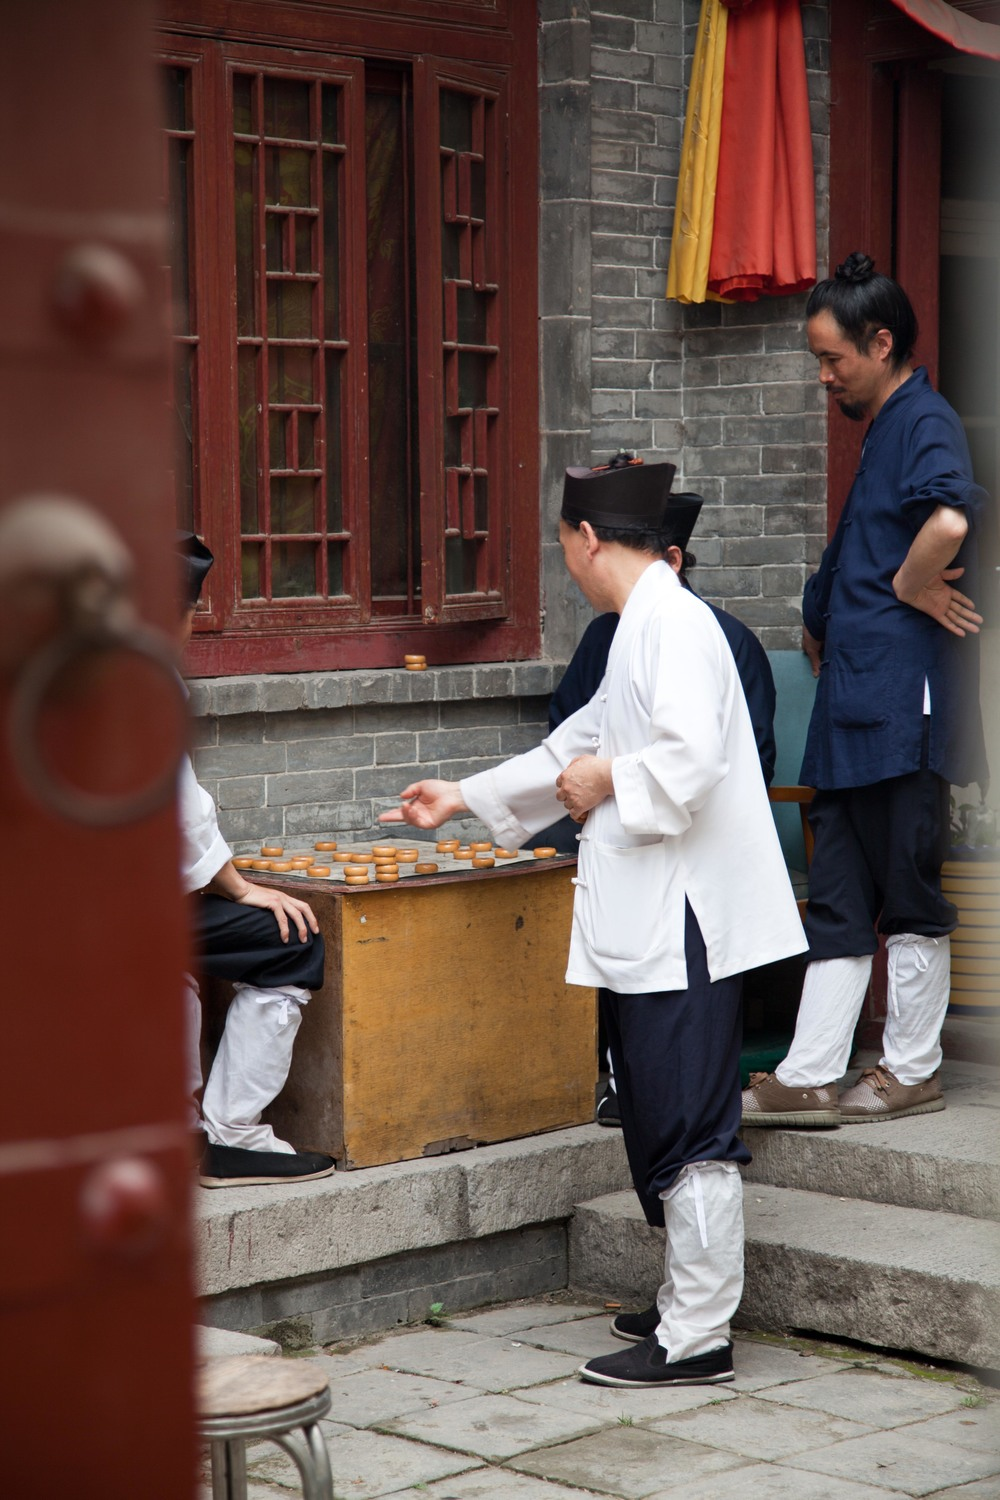 Employees at the temple playing a game - Xian